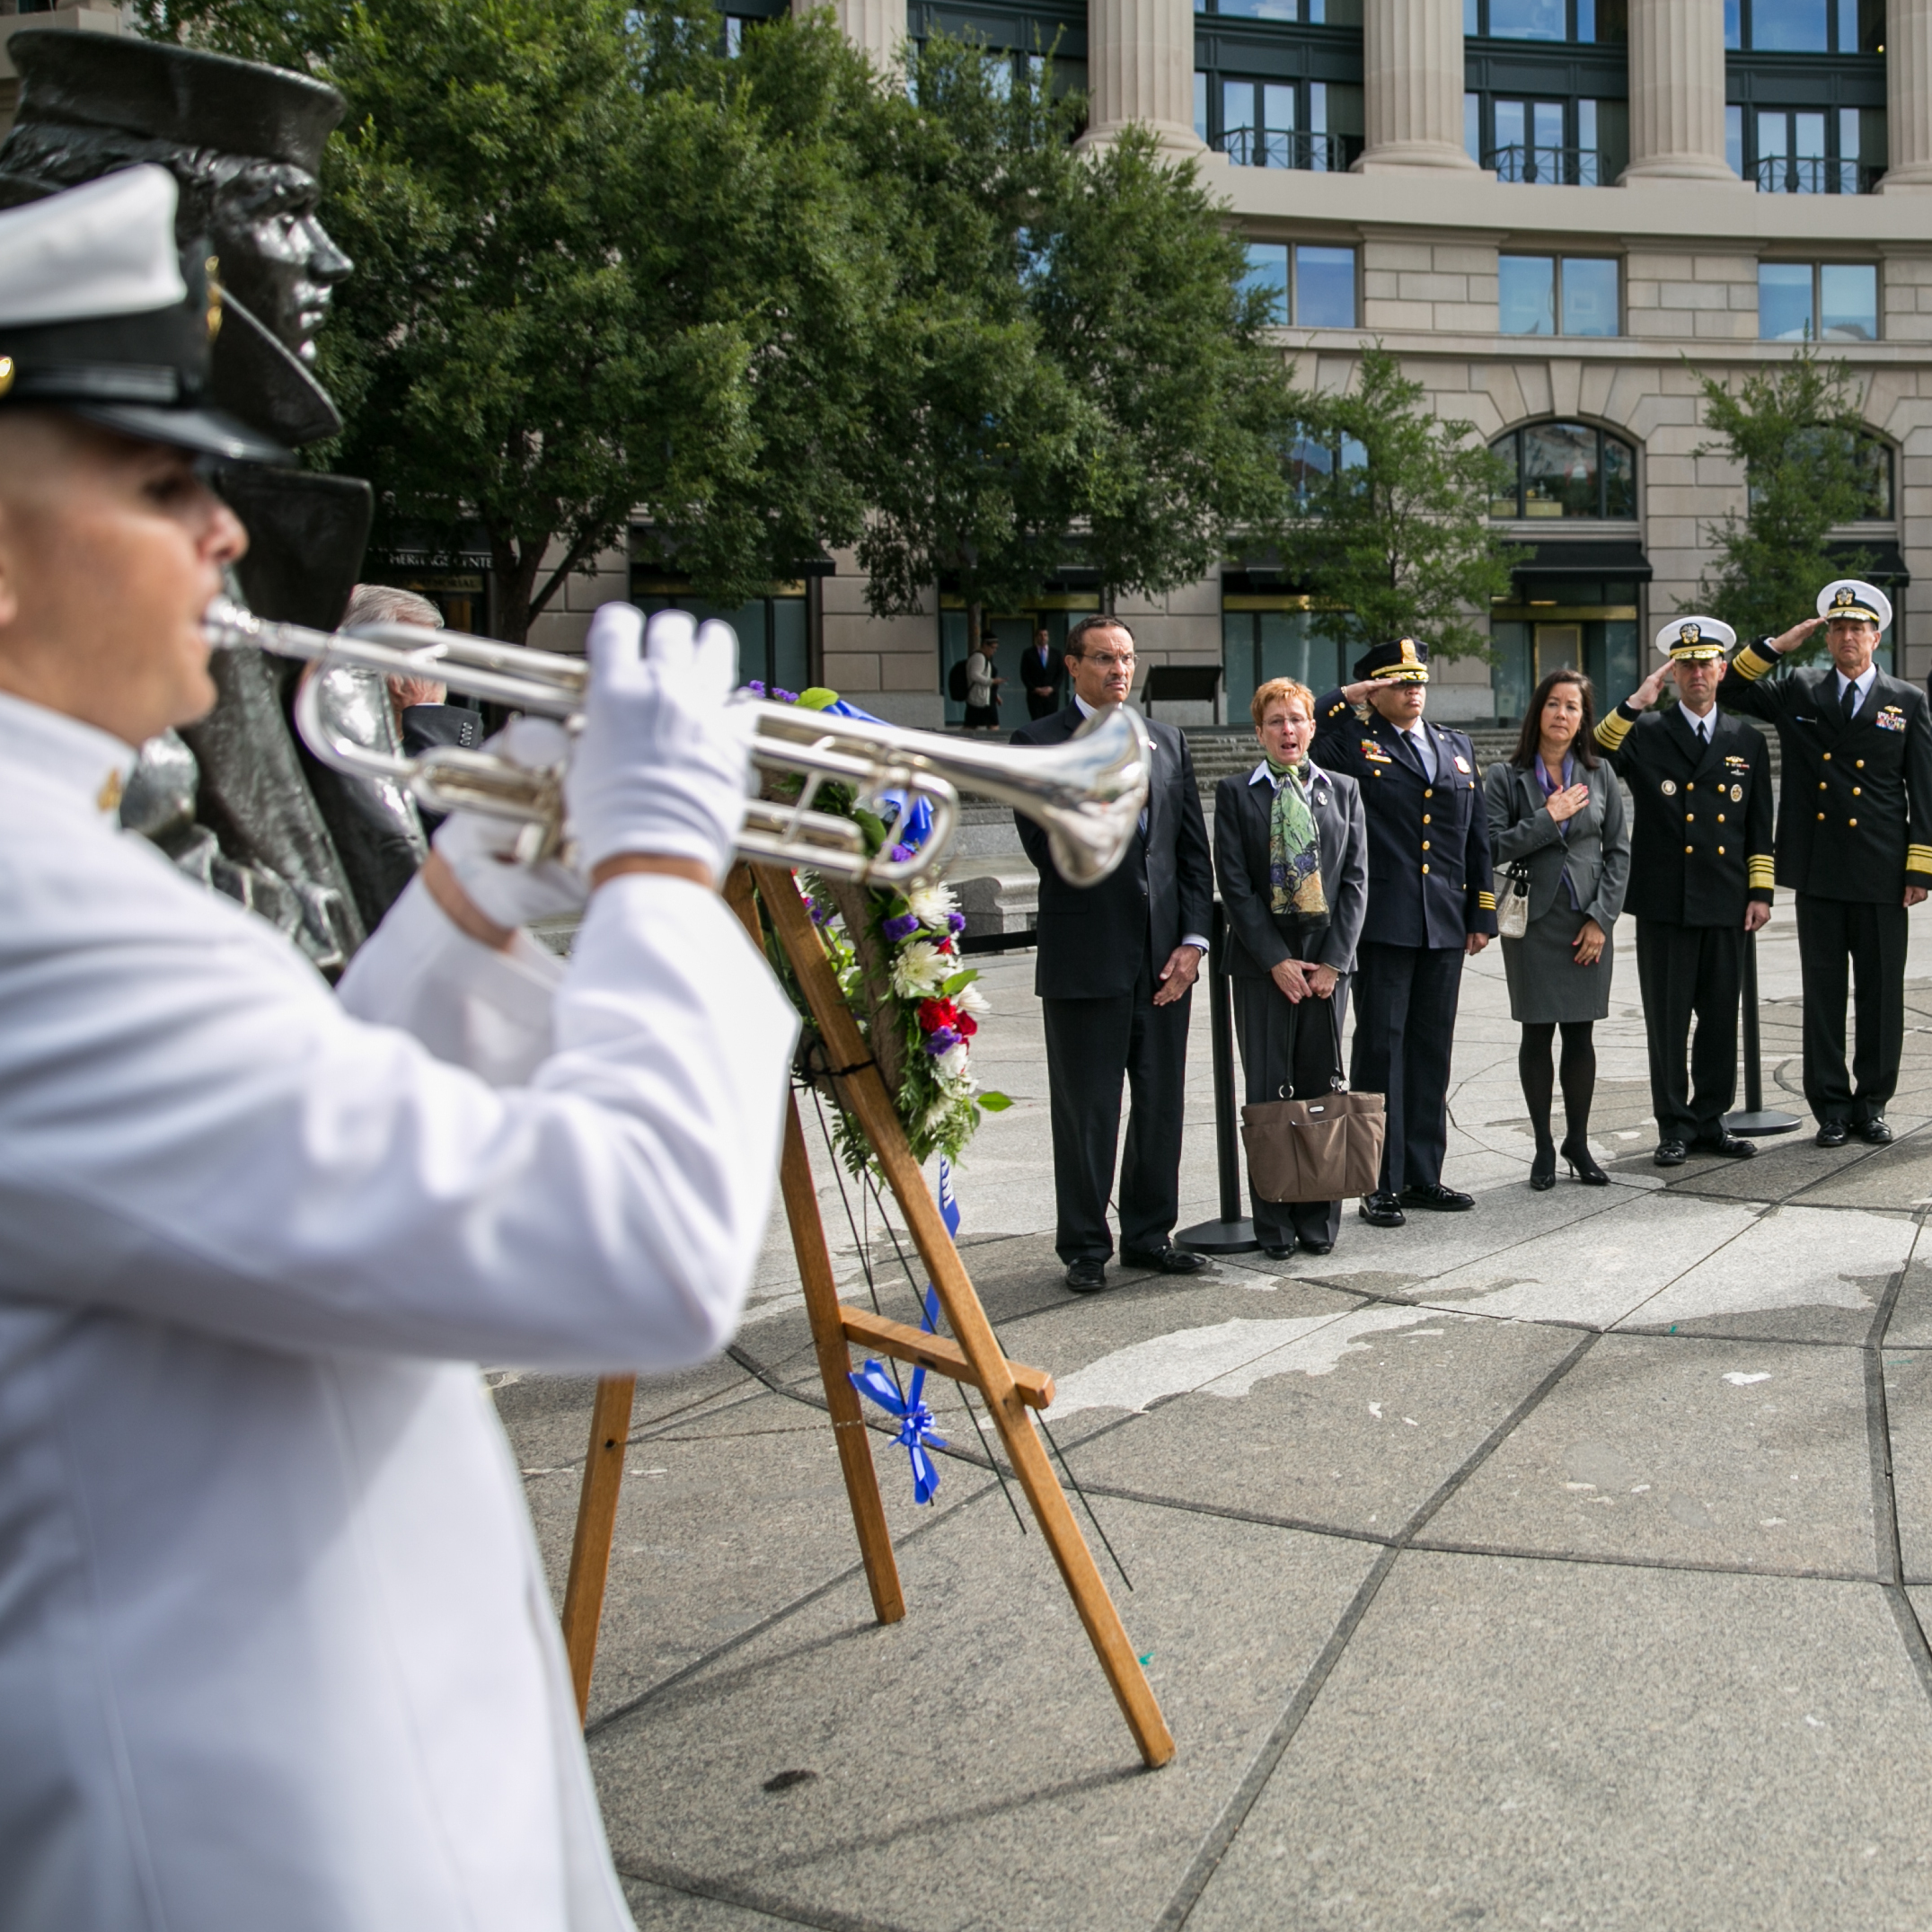 One day after 12 people and an alleged gunman died at the Navy Yard in Washington, D.C., details about their lives are beginning to emerge. On Tuesday, Defense Secretary Chuck Hagel (far right) attends a wreath-laying ceremony at the U.S. Navy Memorial in honor of the victims.